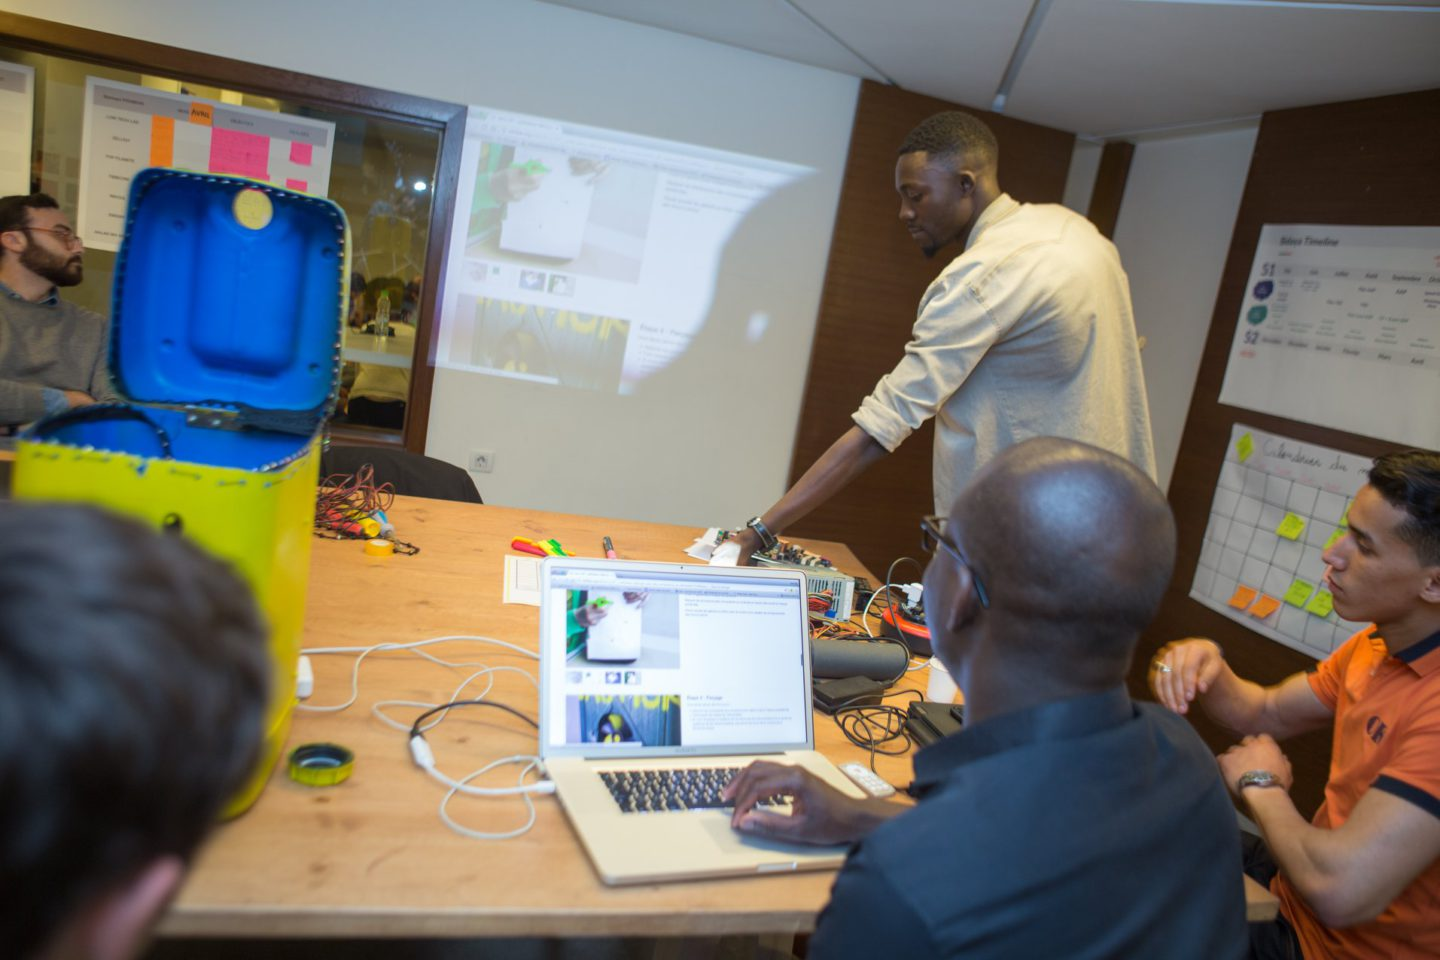 This tech startup is using your old Mac to bridge Africa's digital divide | The Switchers